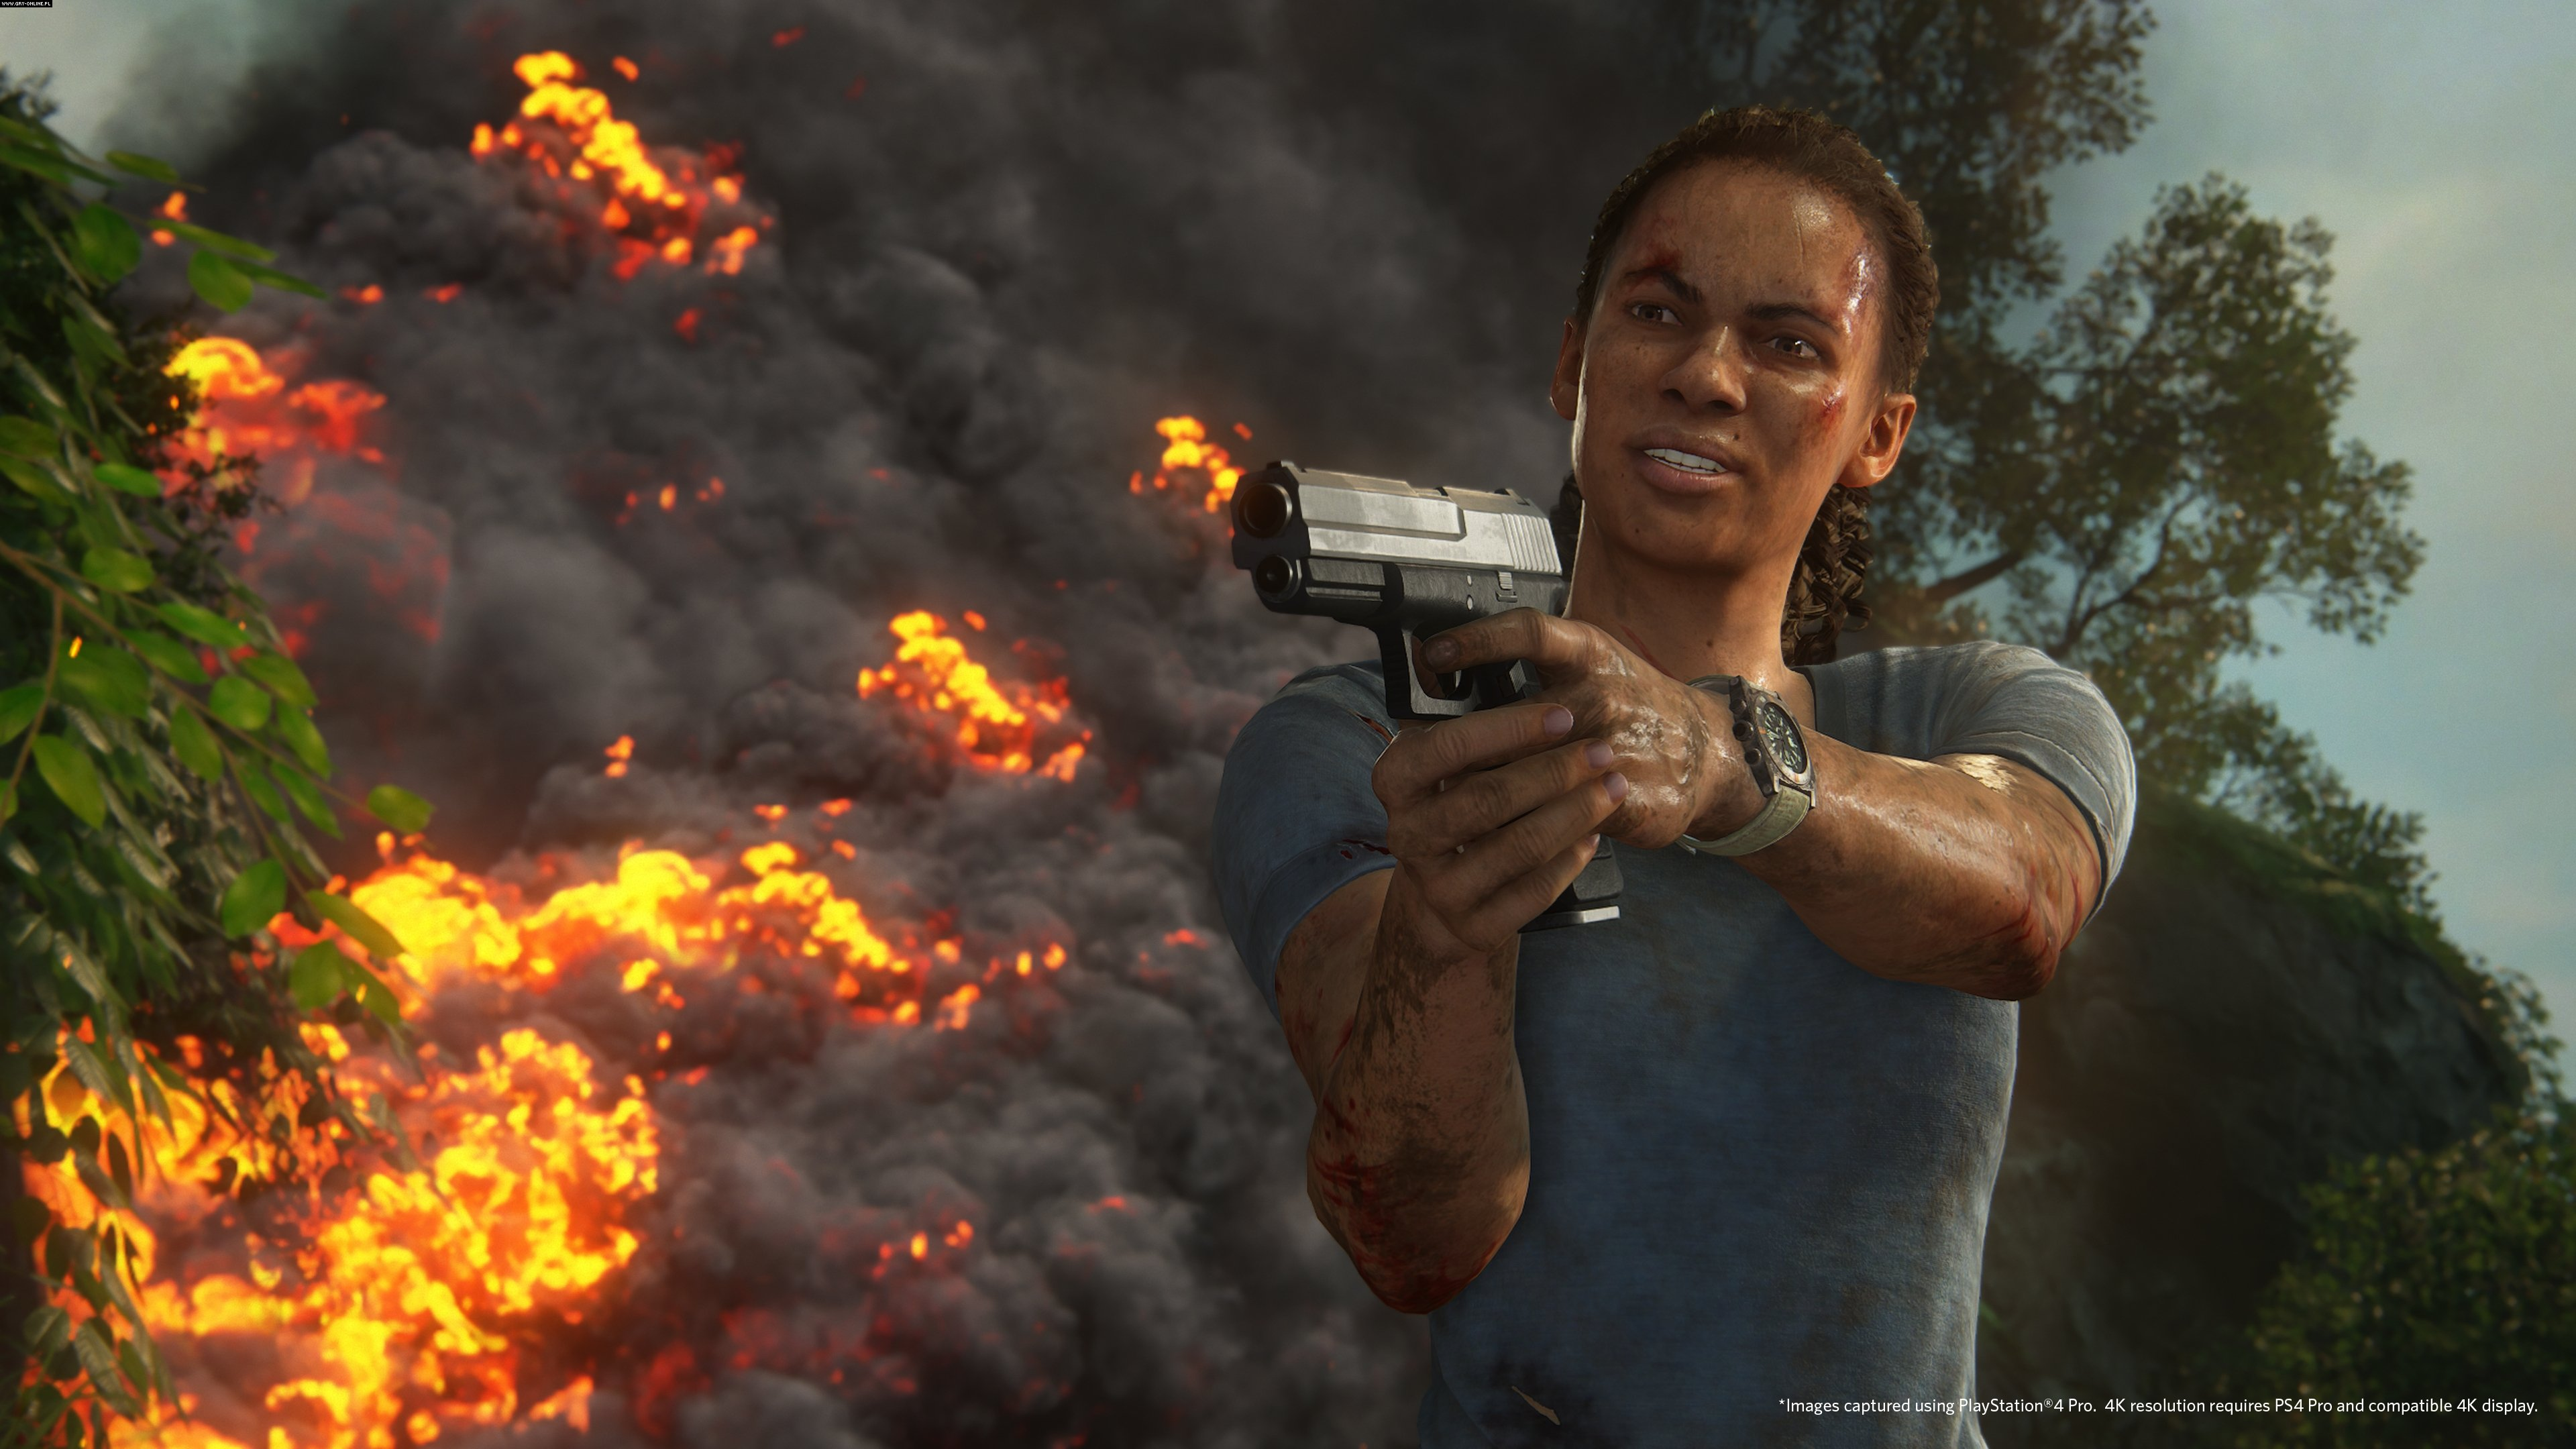 Uncharted: The Lost Legacy PS4 Games Image 9/29, Naughty Dog, Sony Interactive Entertainment